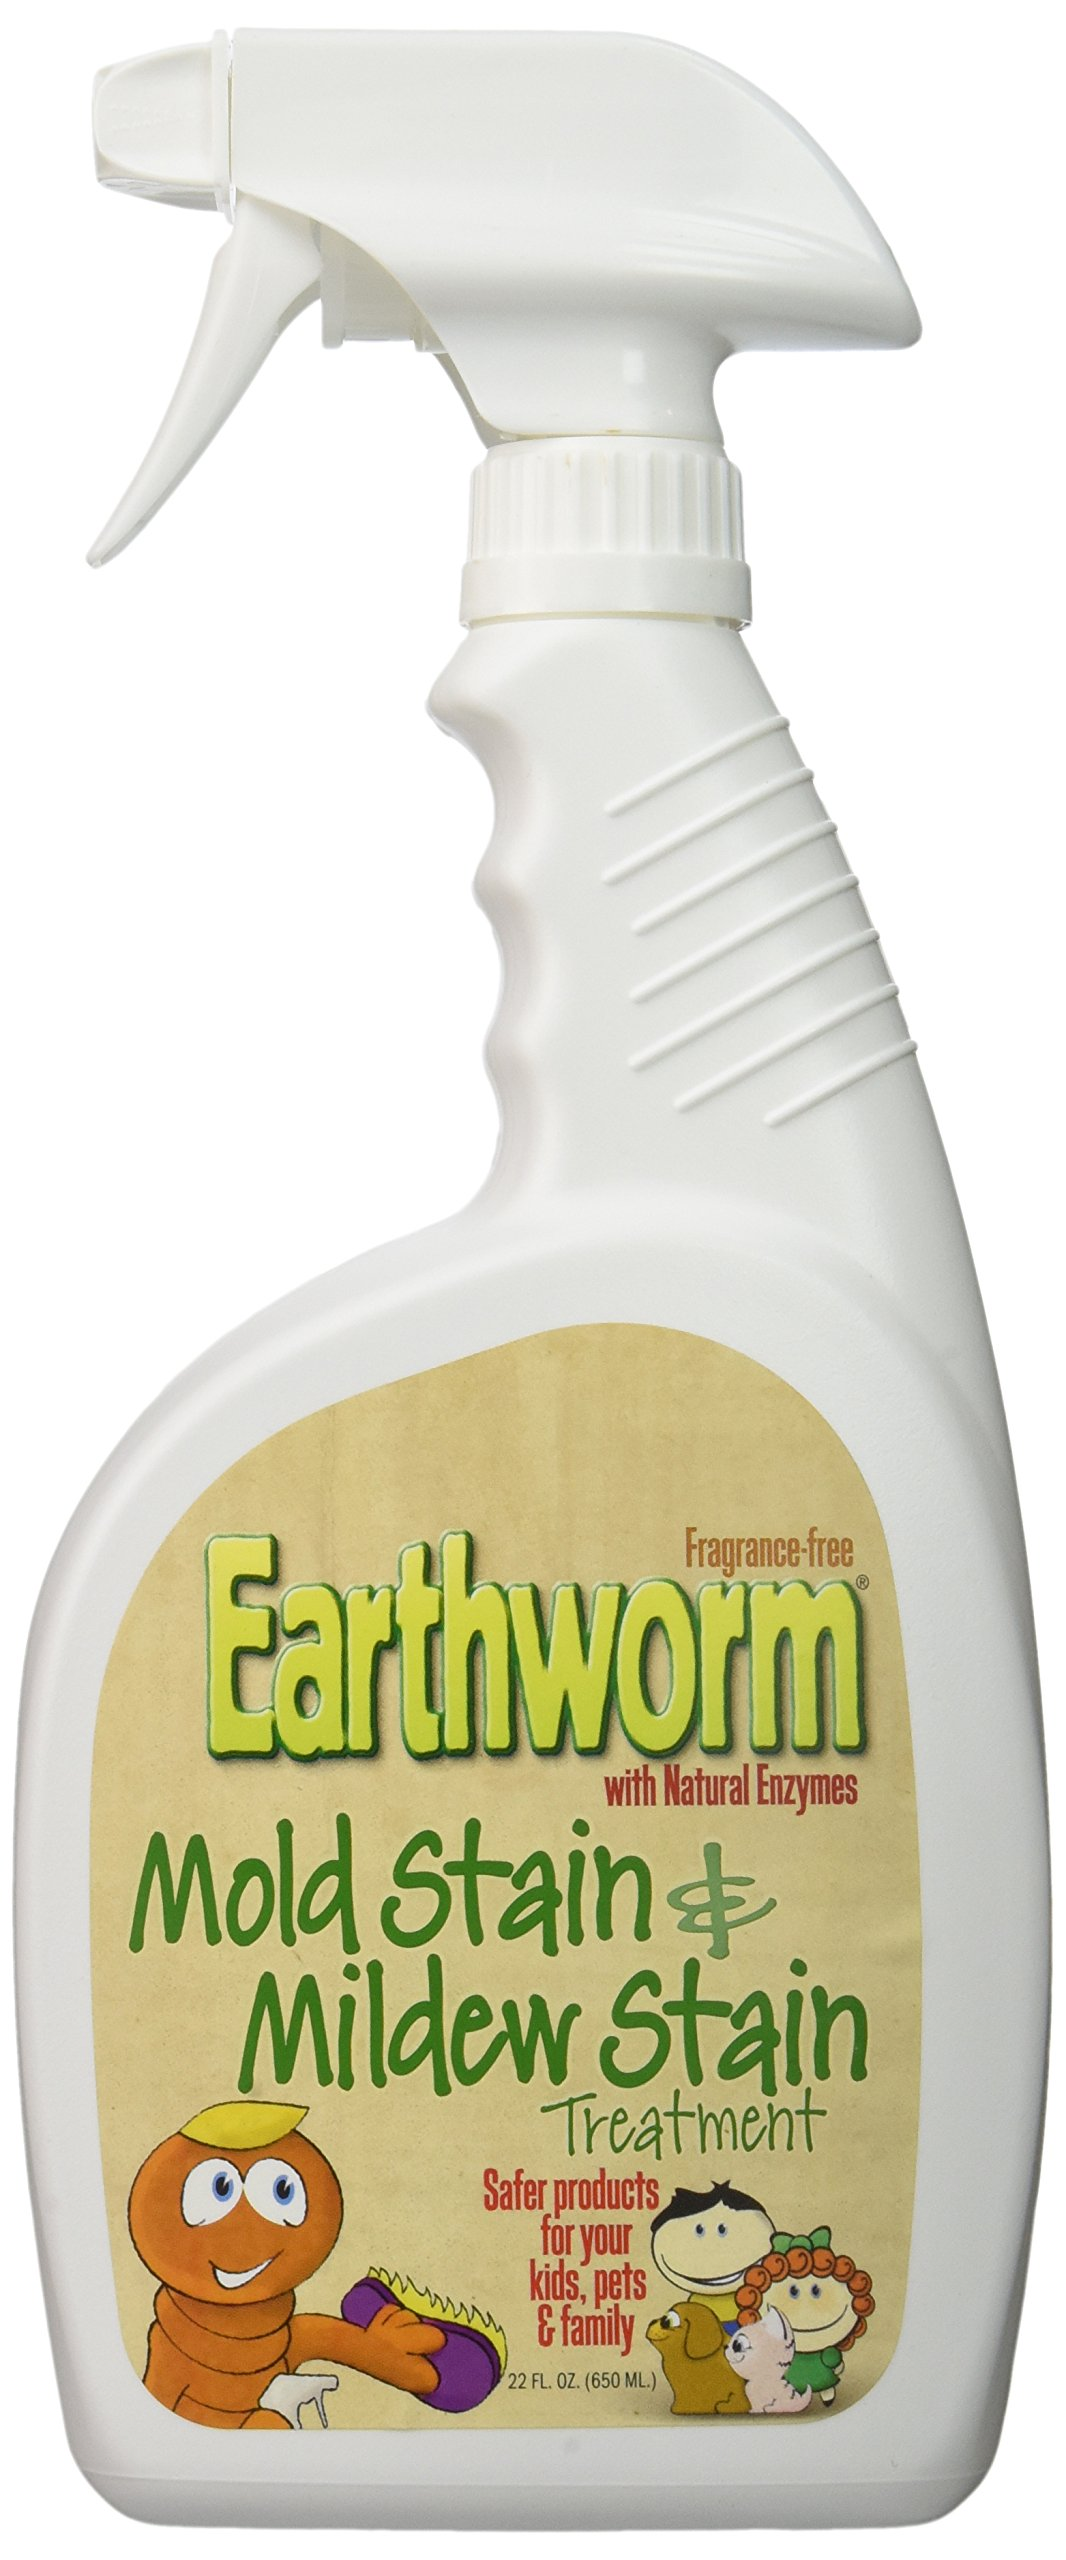 Earthworm® Mold Stain and Mildew Stain Treatment - Natural and Family-Safe - 22 oz